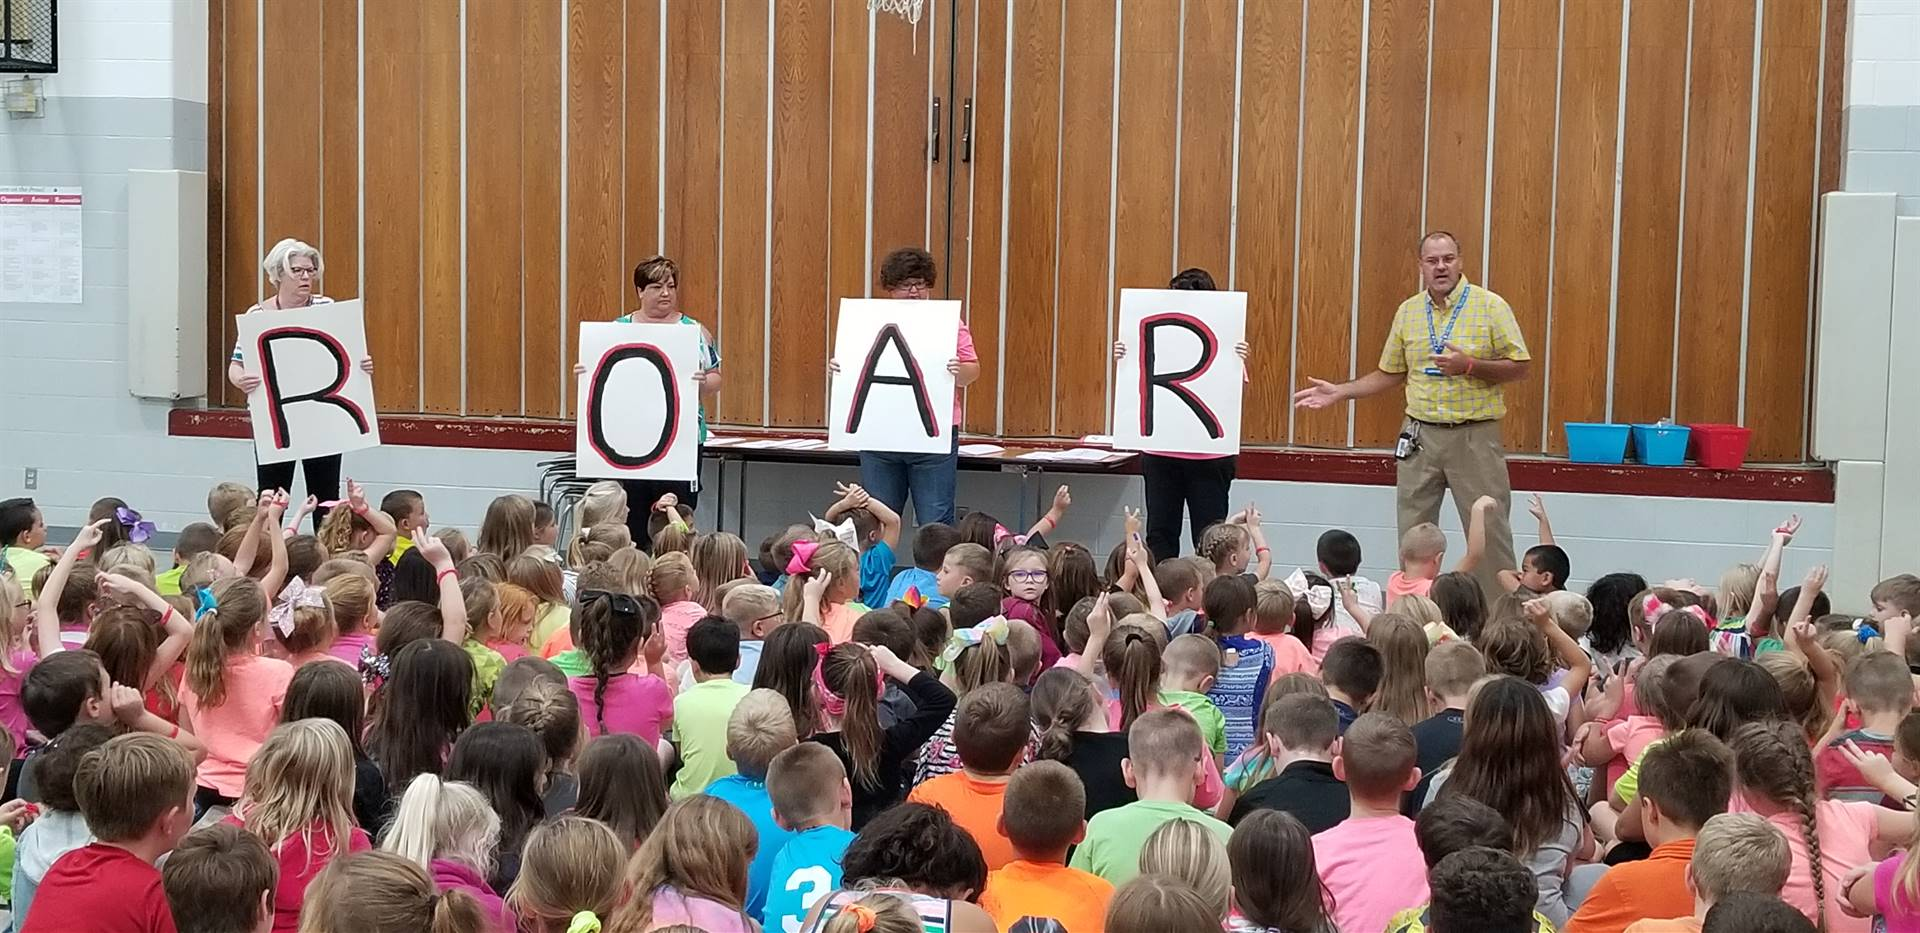 ROAR - Respectful, Organized, Achieve, Responsible